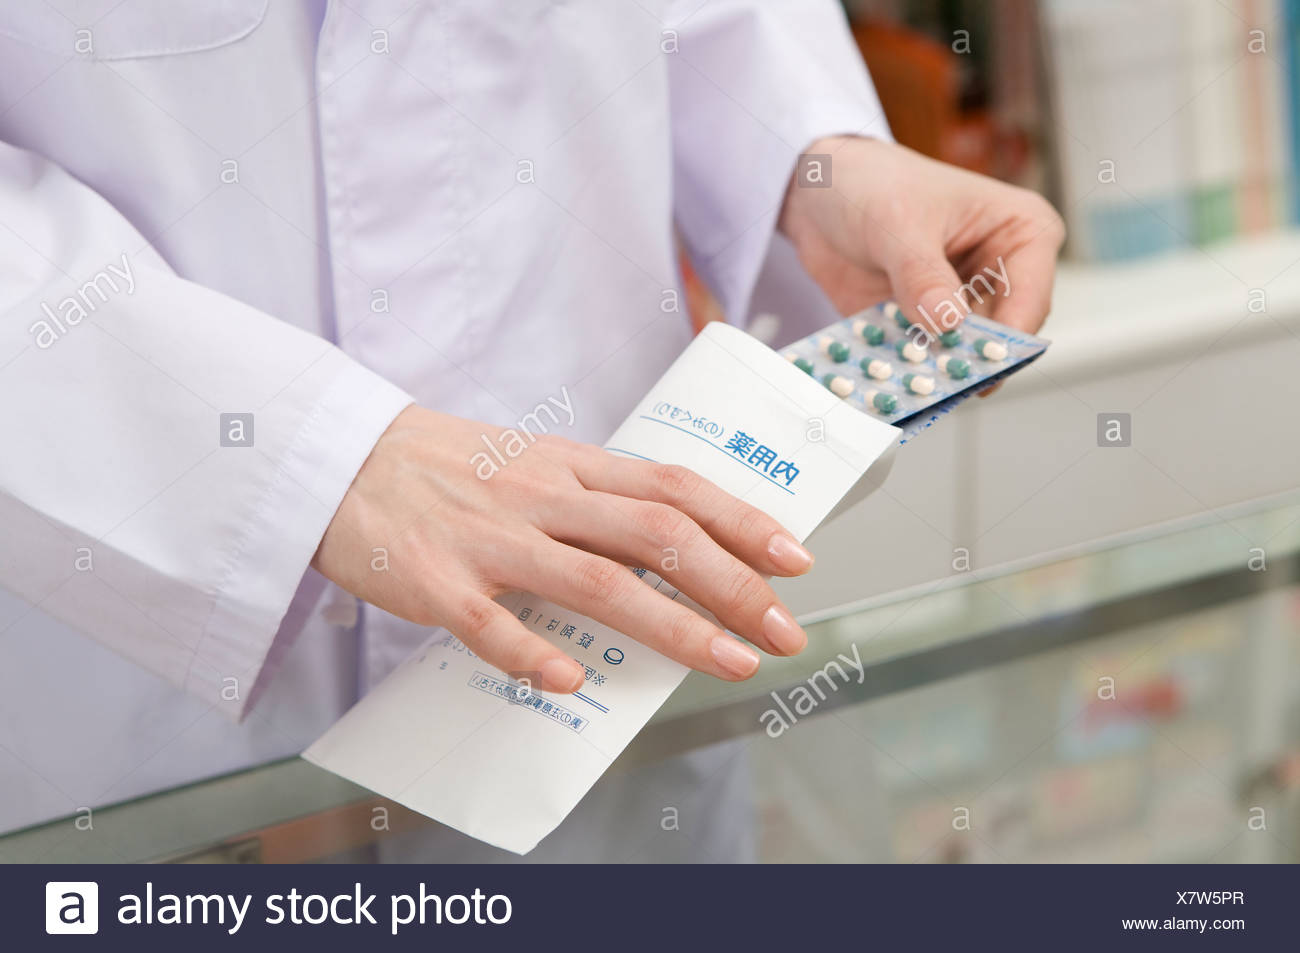 Pharmacist Putting Medicine into Pouch - Stock Image